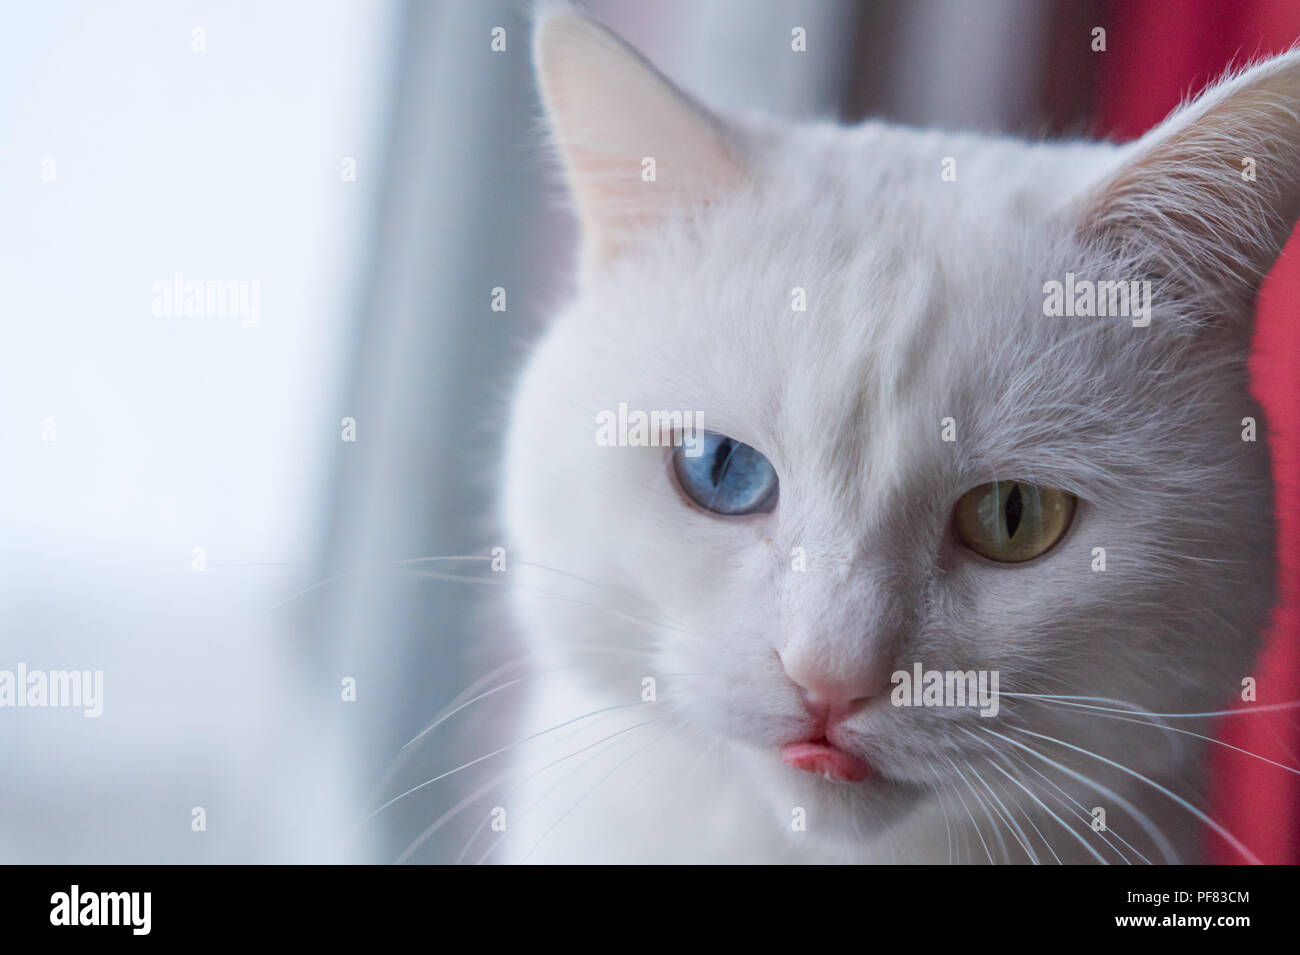 96b4736157 Cat with 2 different-colored eyes (heterocromatic eyes) — Turkish Angora. It